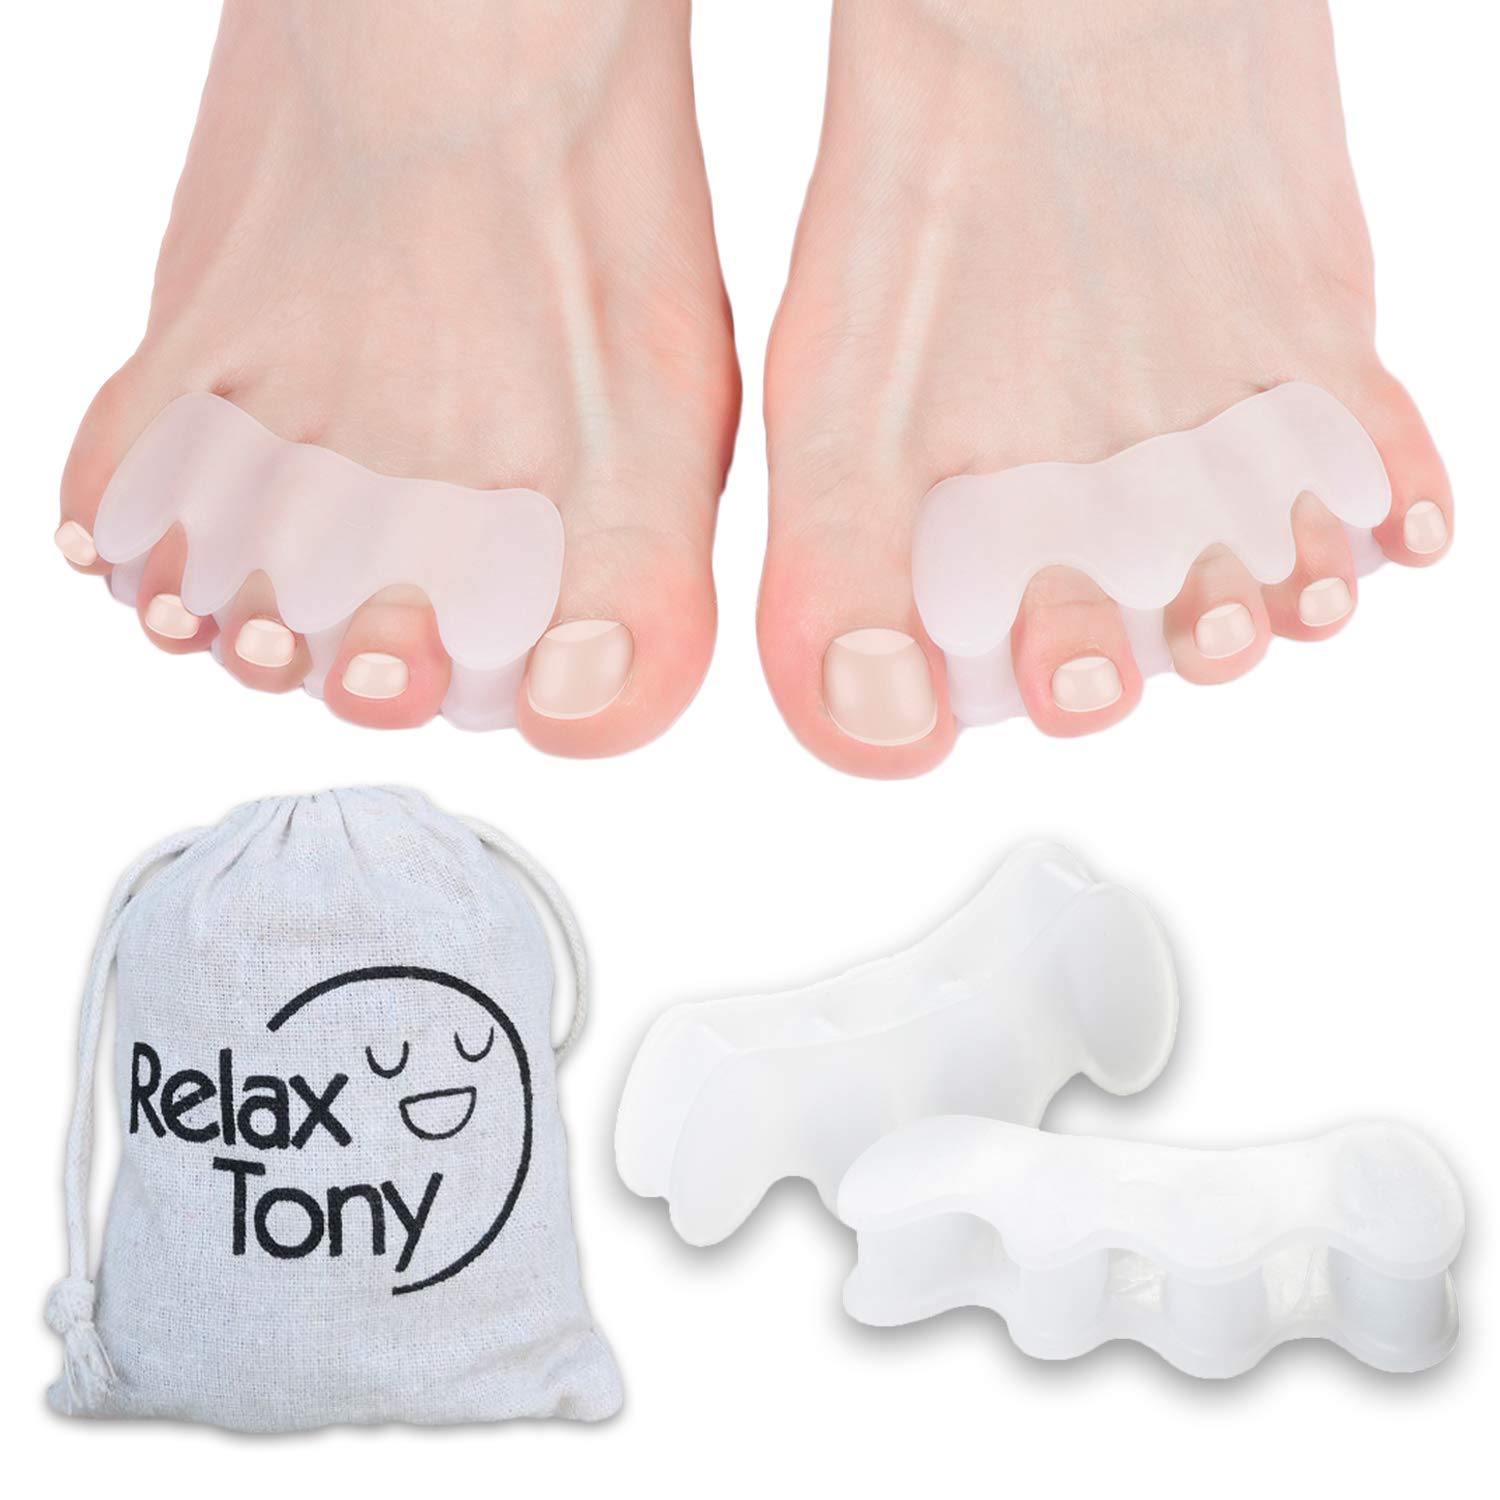 Anatomical Toe Separators, Straighteners & Spacers For Fitness and Wellness Use by Relax Tony